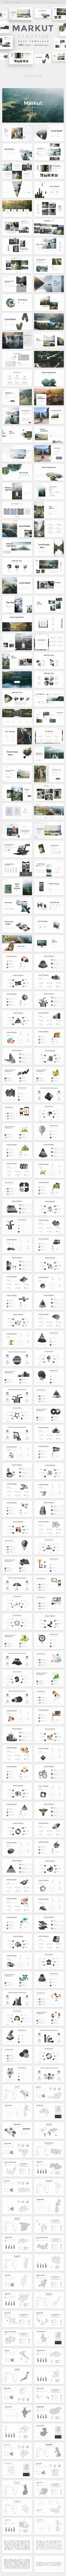 Marley Premium PowerPoint Template - Modern & Unique Slides - Screen Ratio - px - Device Mockups Included - Fully Editable and Customization - Creative and Innovative Presentation Slides - Editable Icons Creative Powerpoint Templates, Best Templates, Powerpoint Presentation Templates, Keynote Template, Presentation Slides, Business Presentation, Presentation Design, Table Planner, Slide Template